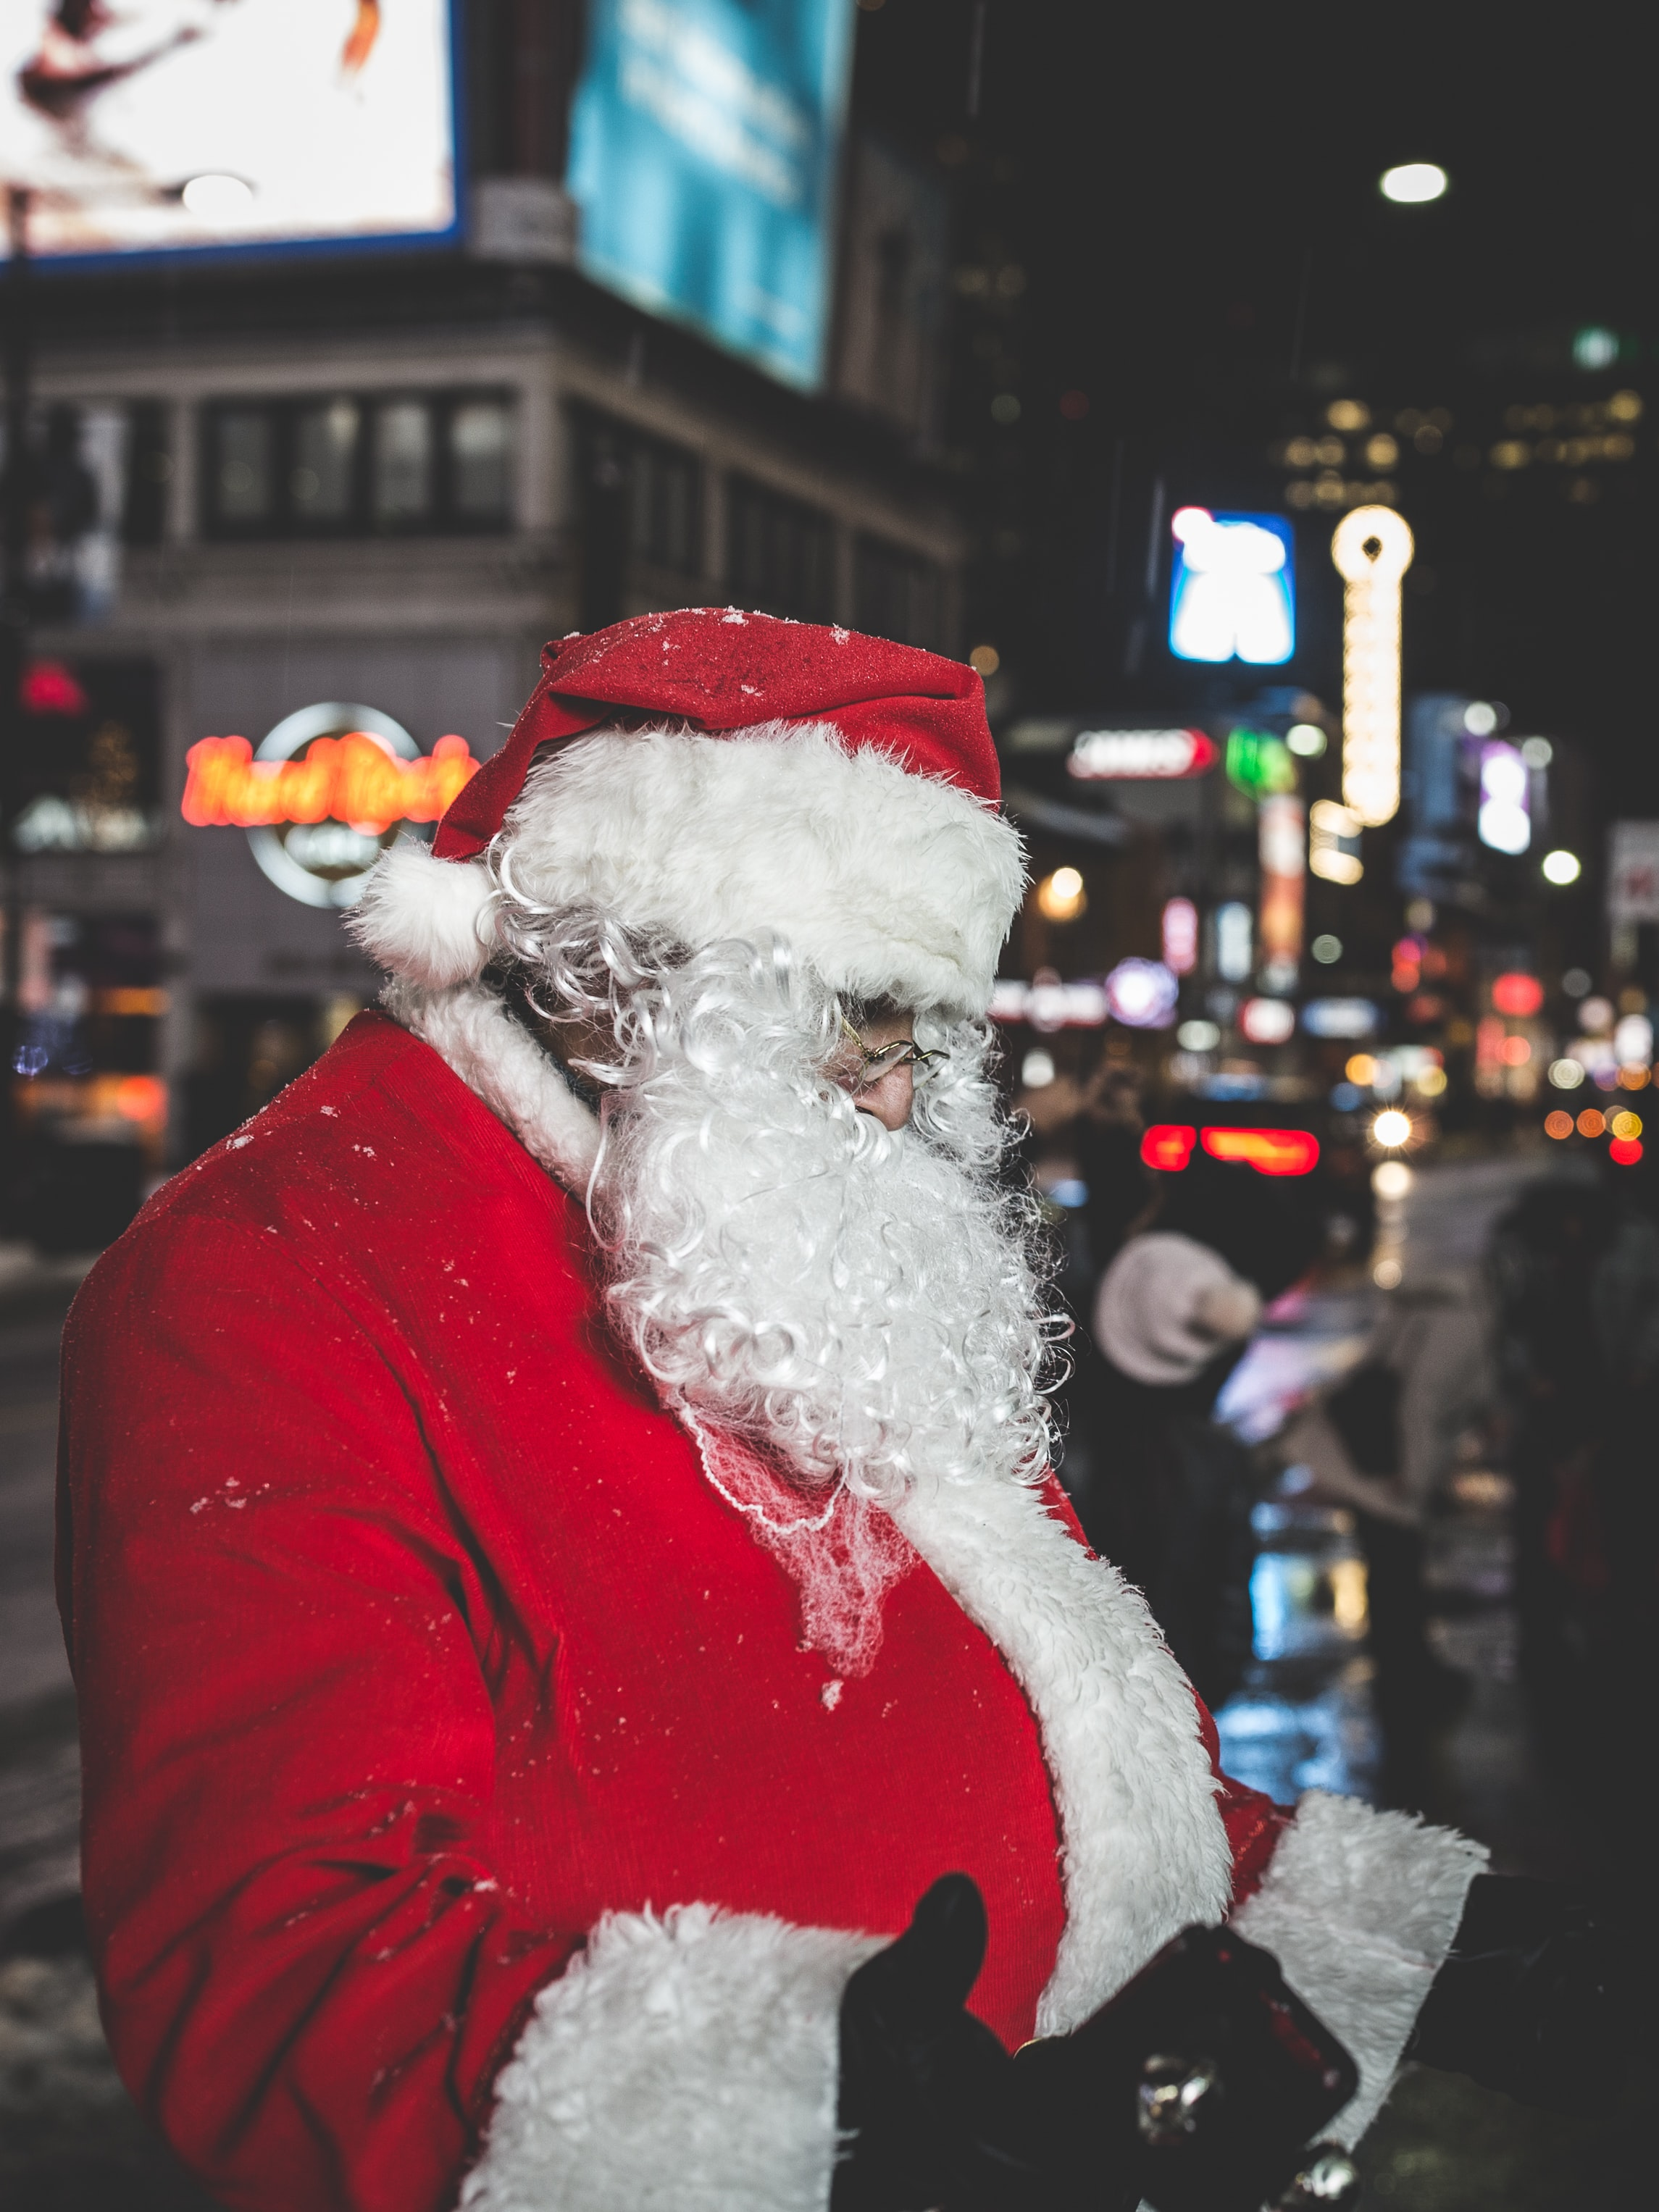 Santa Claus standing near buildings